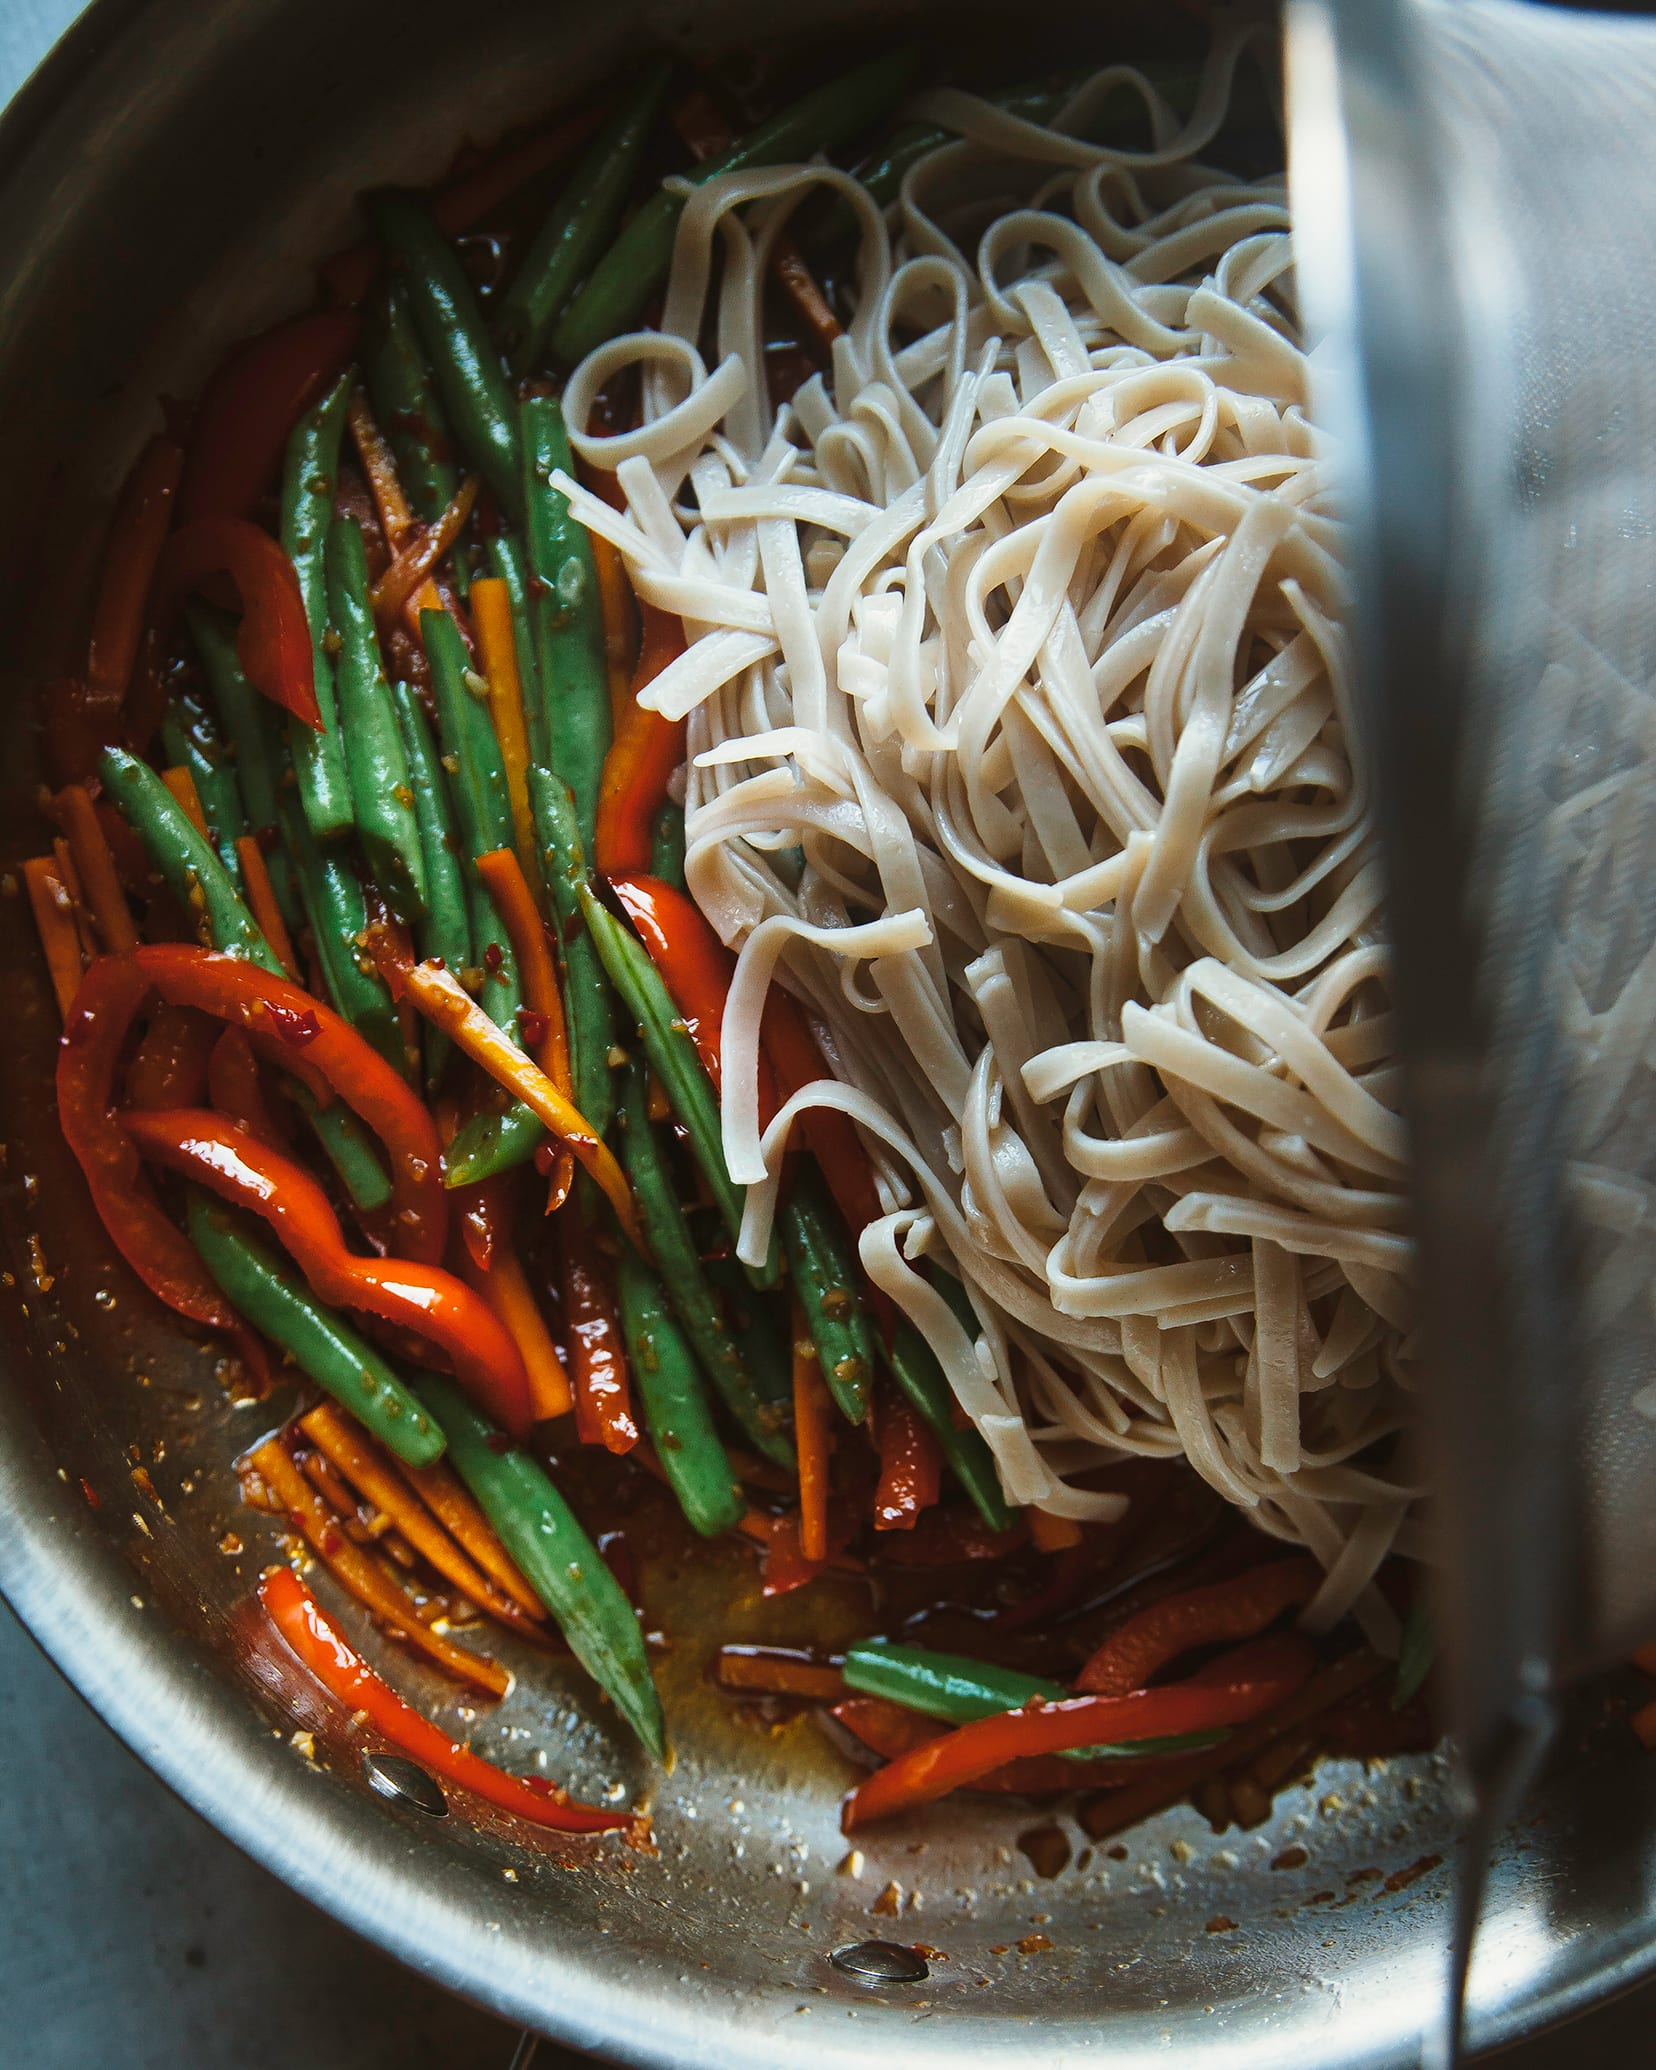 Image shows cooked noodles being added to a pan with sautéed vegetables.